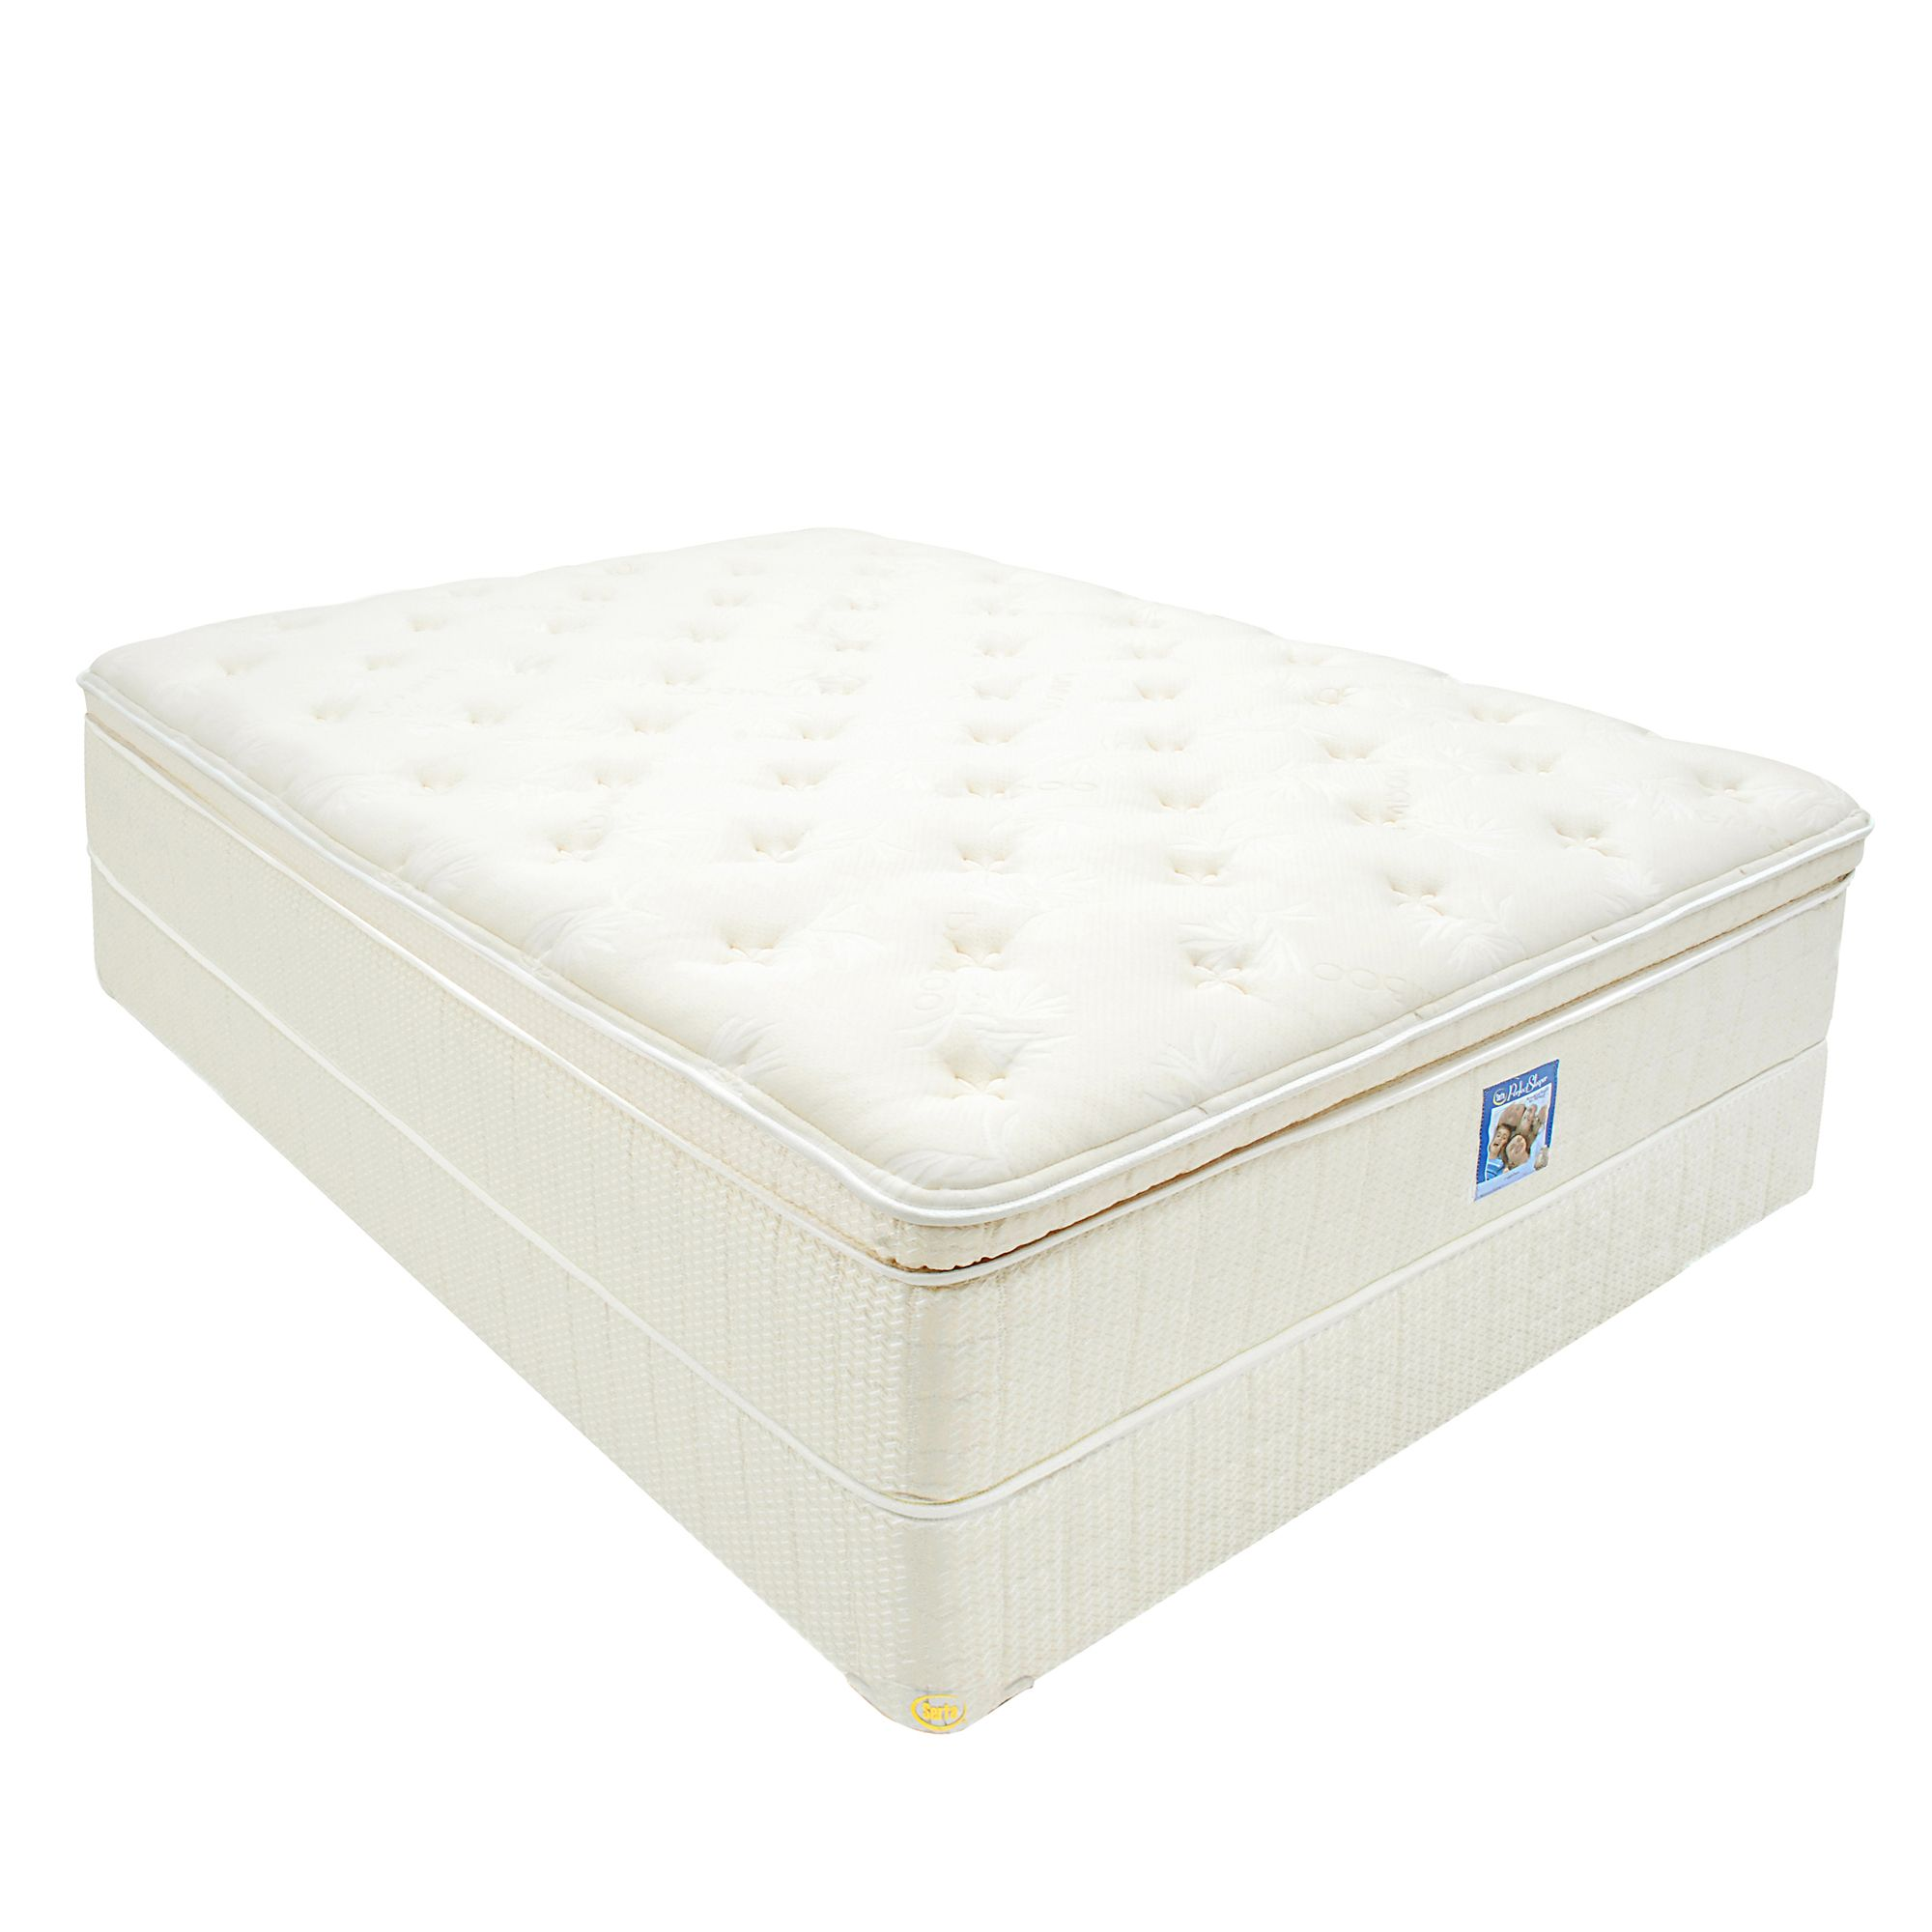 Reese-Limited-Firm-II-EuroTop-Twin-Mattress